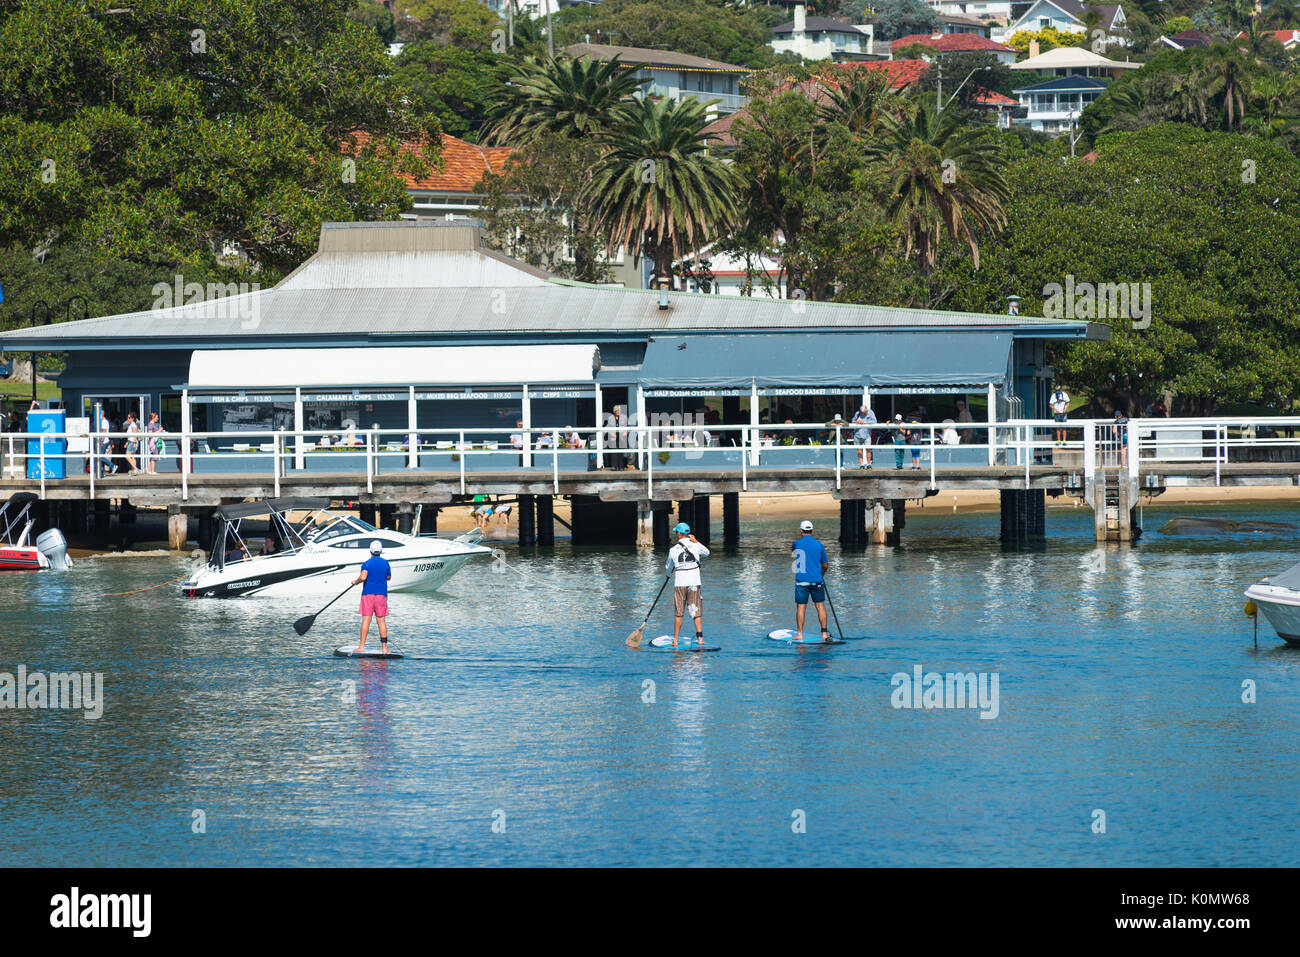 Stand up paddle boarding at Watsons harbour near the ferry stop, Sydney, New South Wales, Australia. - Stock Image